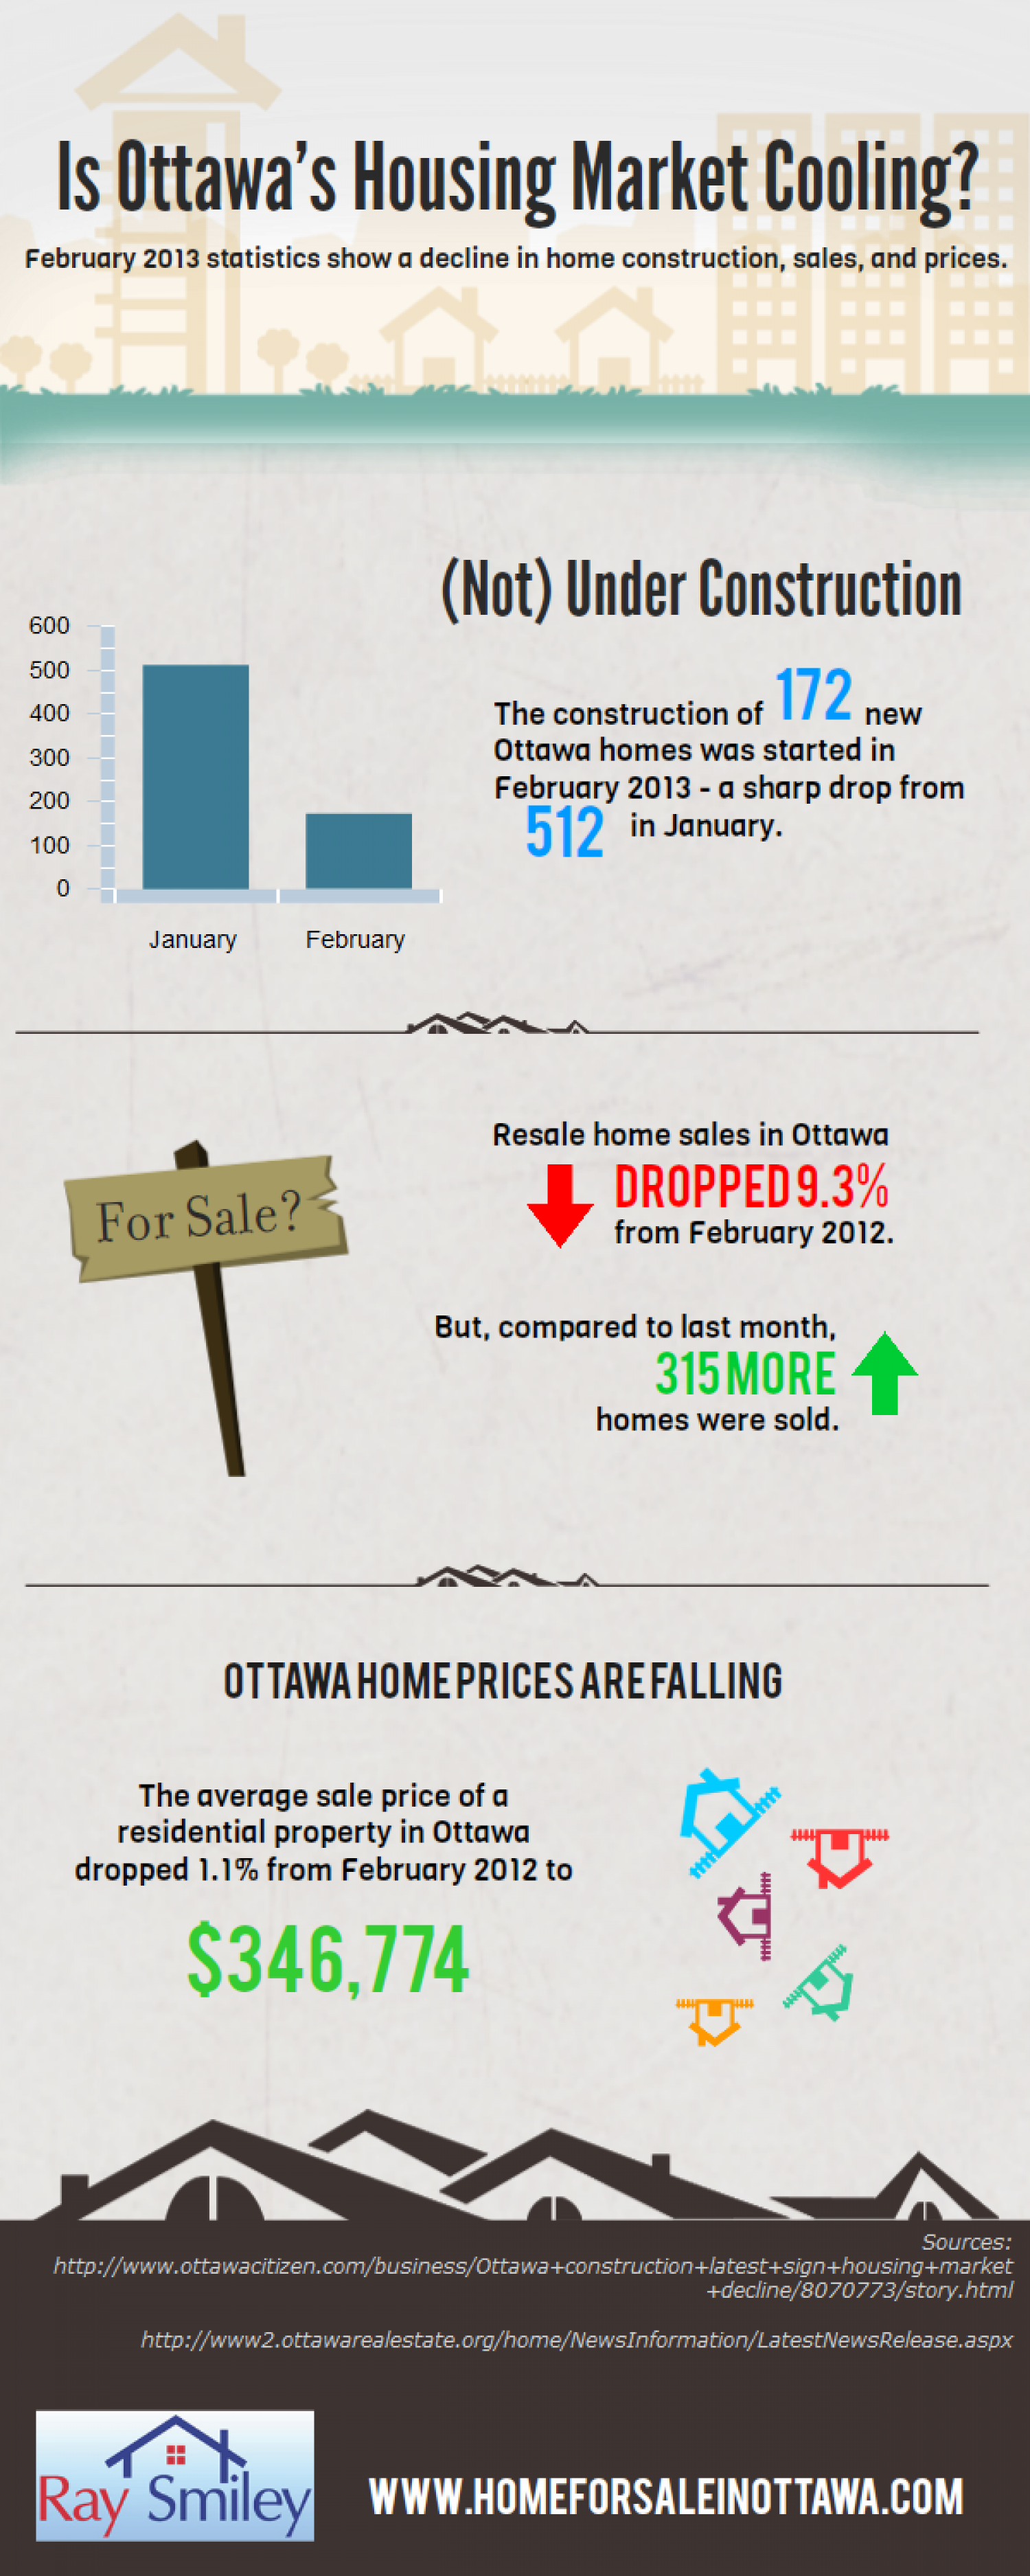 Is Ottawa's Housing Market Cooling? Infographic